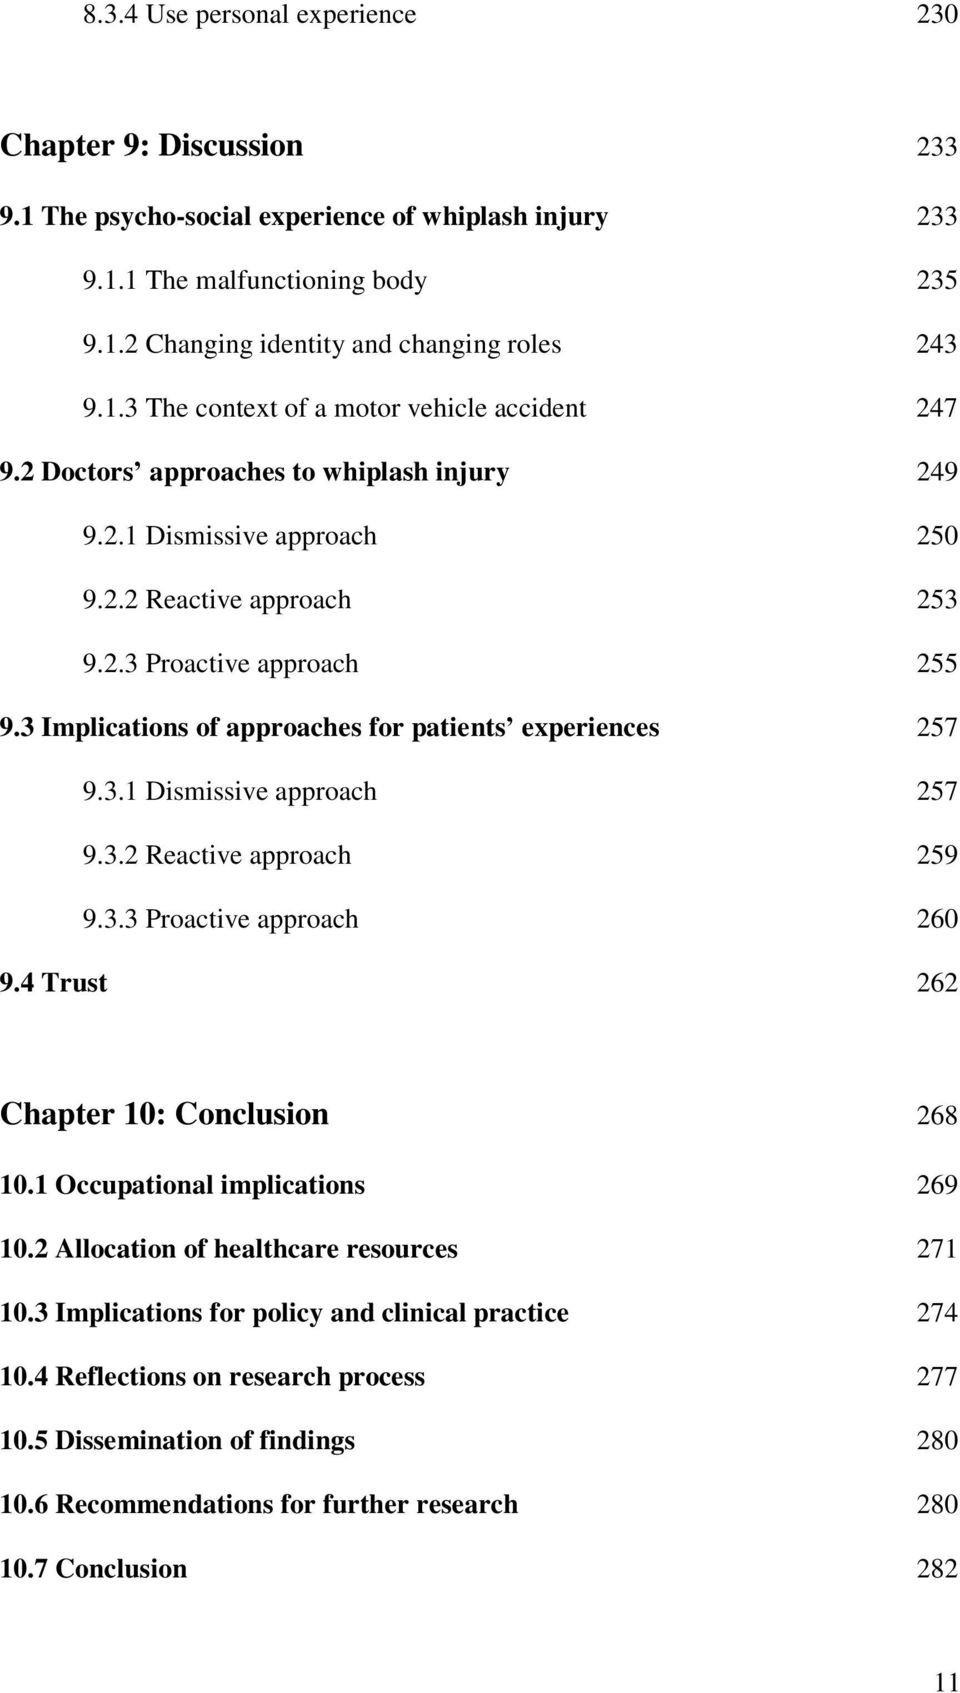 3 Implications of approaches for patients experiences 257 9.3.1 Dismissive approach 257 9.3.2 Reactive approach 259 9.3.3 Proactive approach 260 9.4 Trust 262 Chapter 10: Conclusion 268 10.